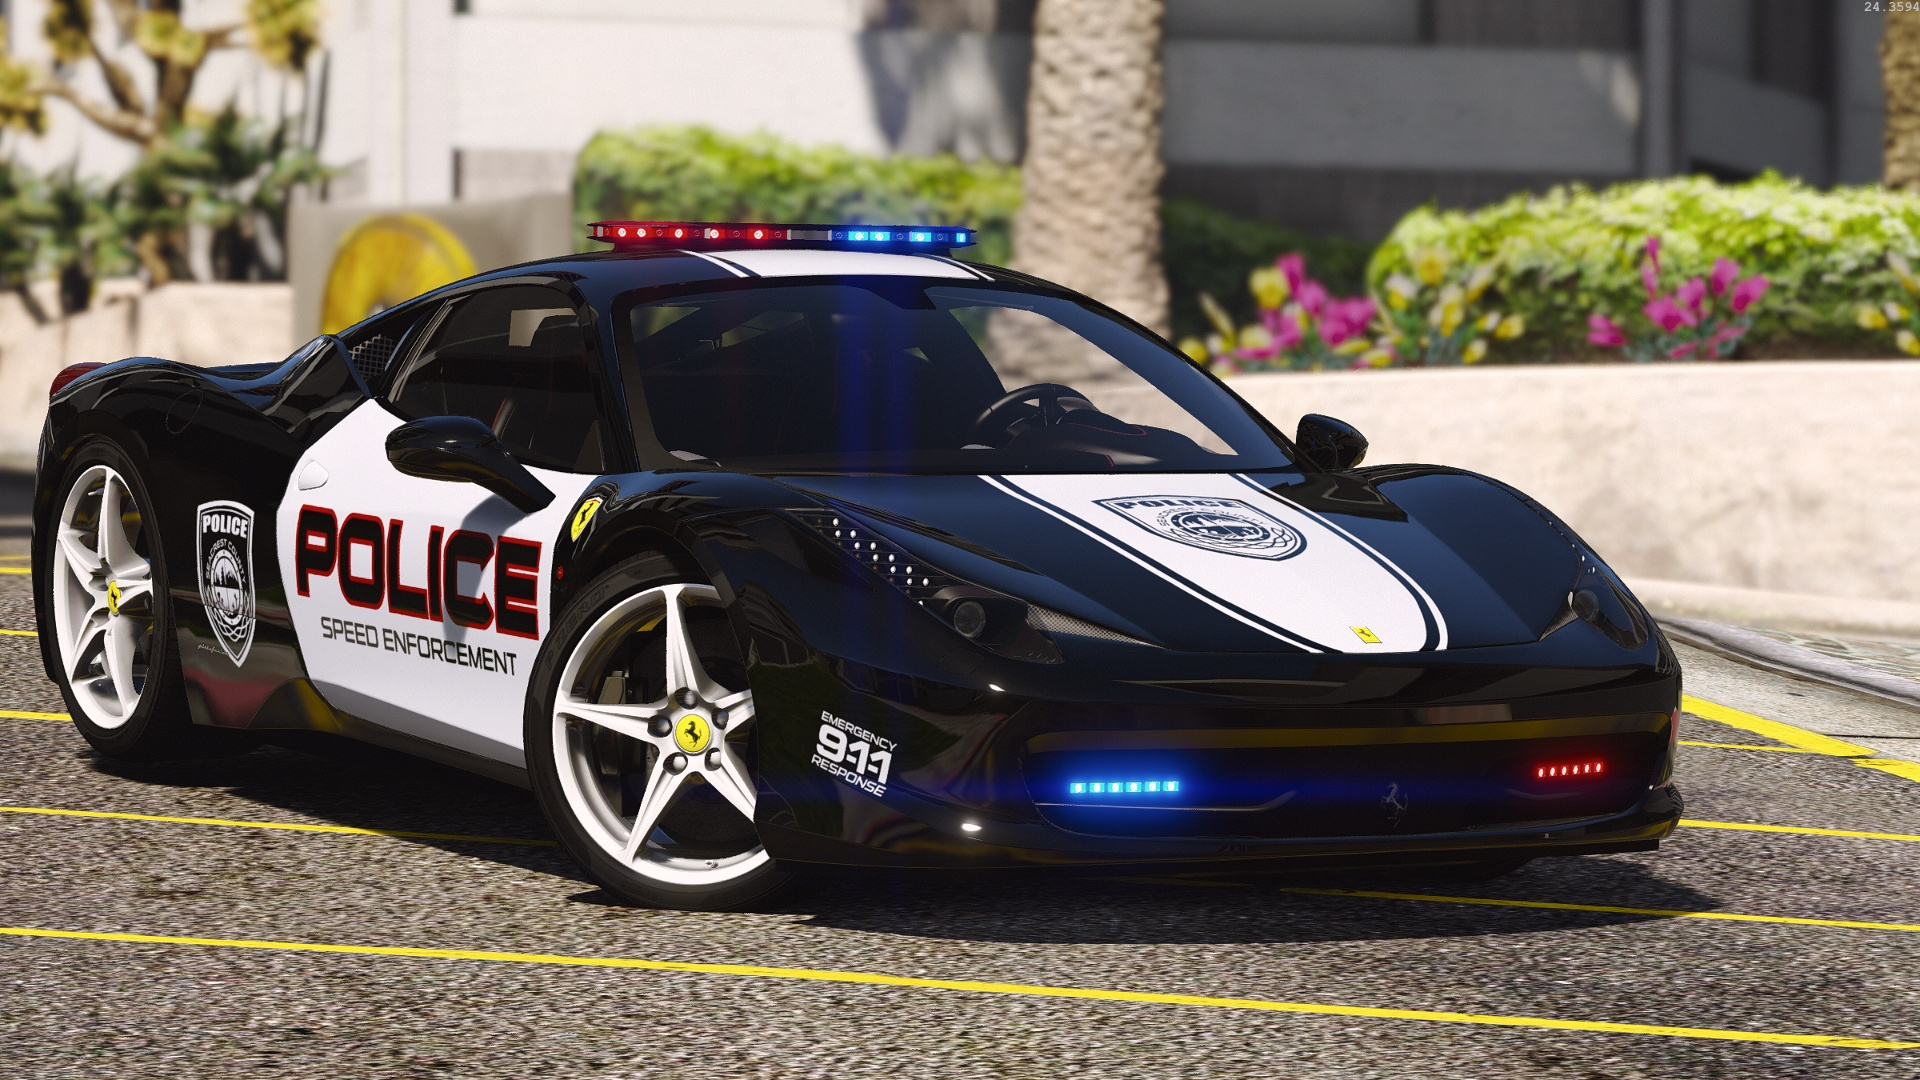 ferrari 458 italia hot pursuit police autovista add on replace template - 2016 Ferrari 458 Replacement